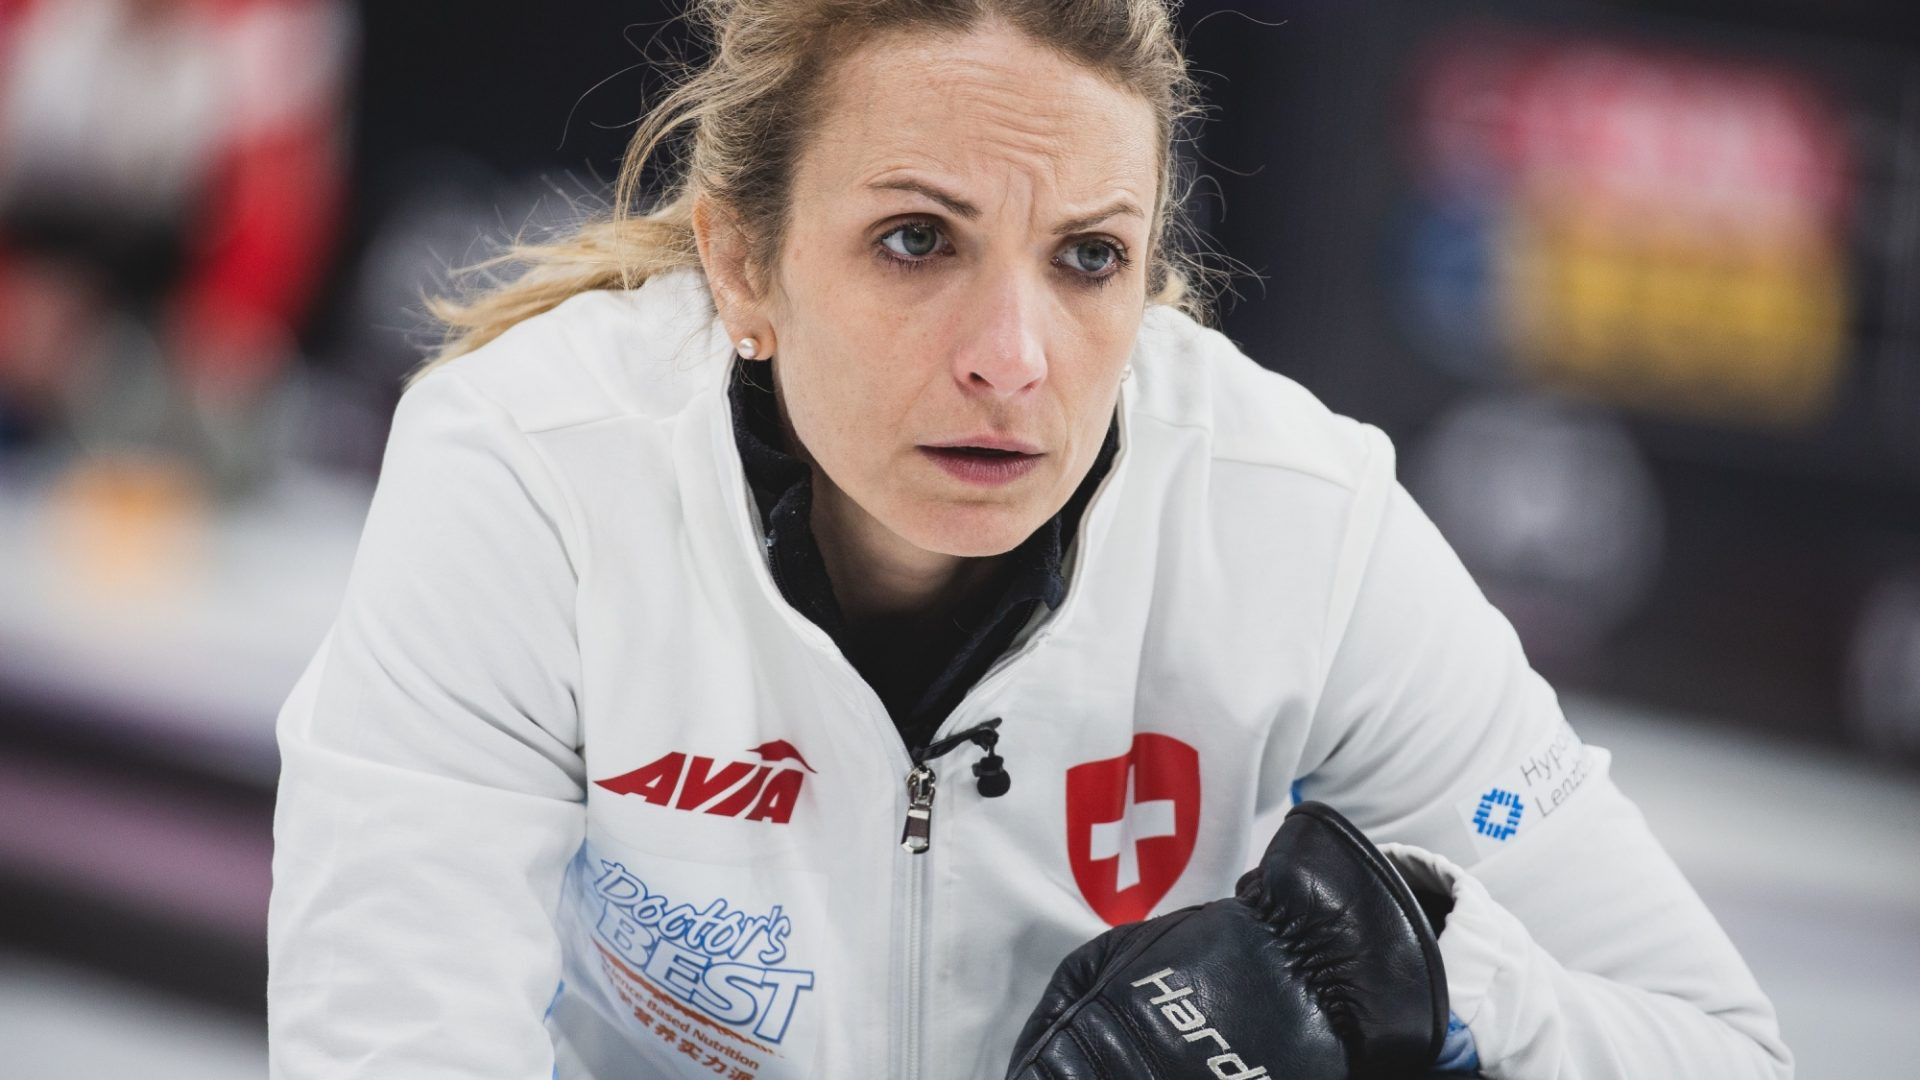 Women's world champions Switzerland reach gold medal match at Curling World Cup Grand Final